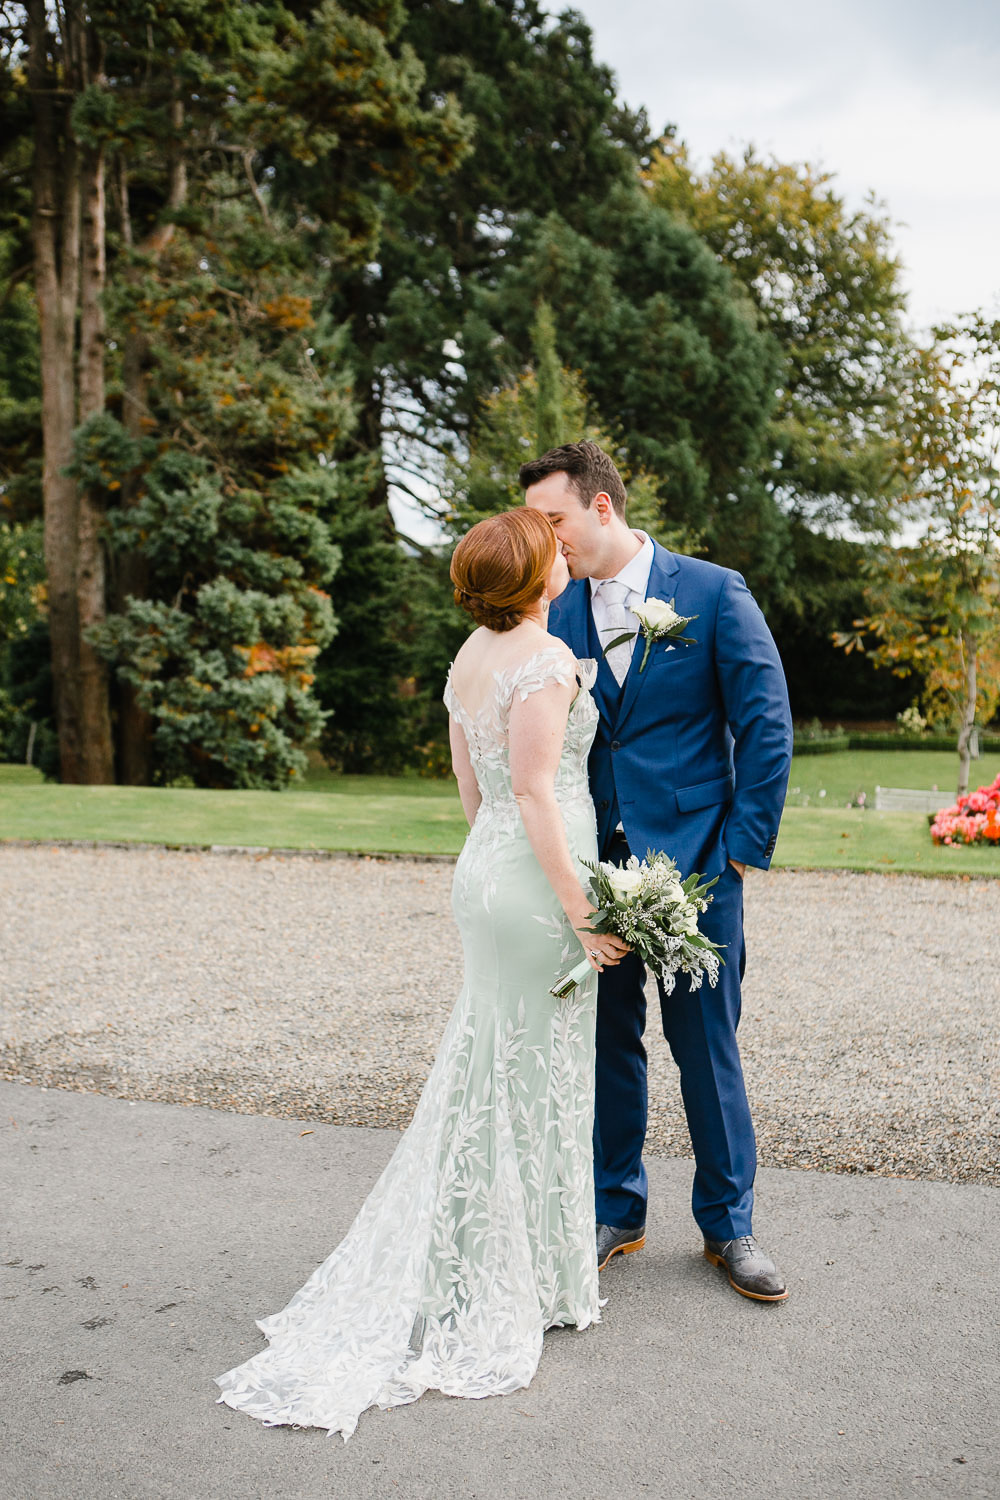 Tinakilly Country House Wedding Photo Of Bride And Groom